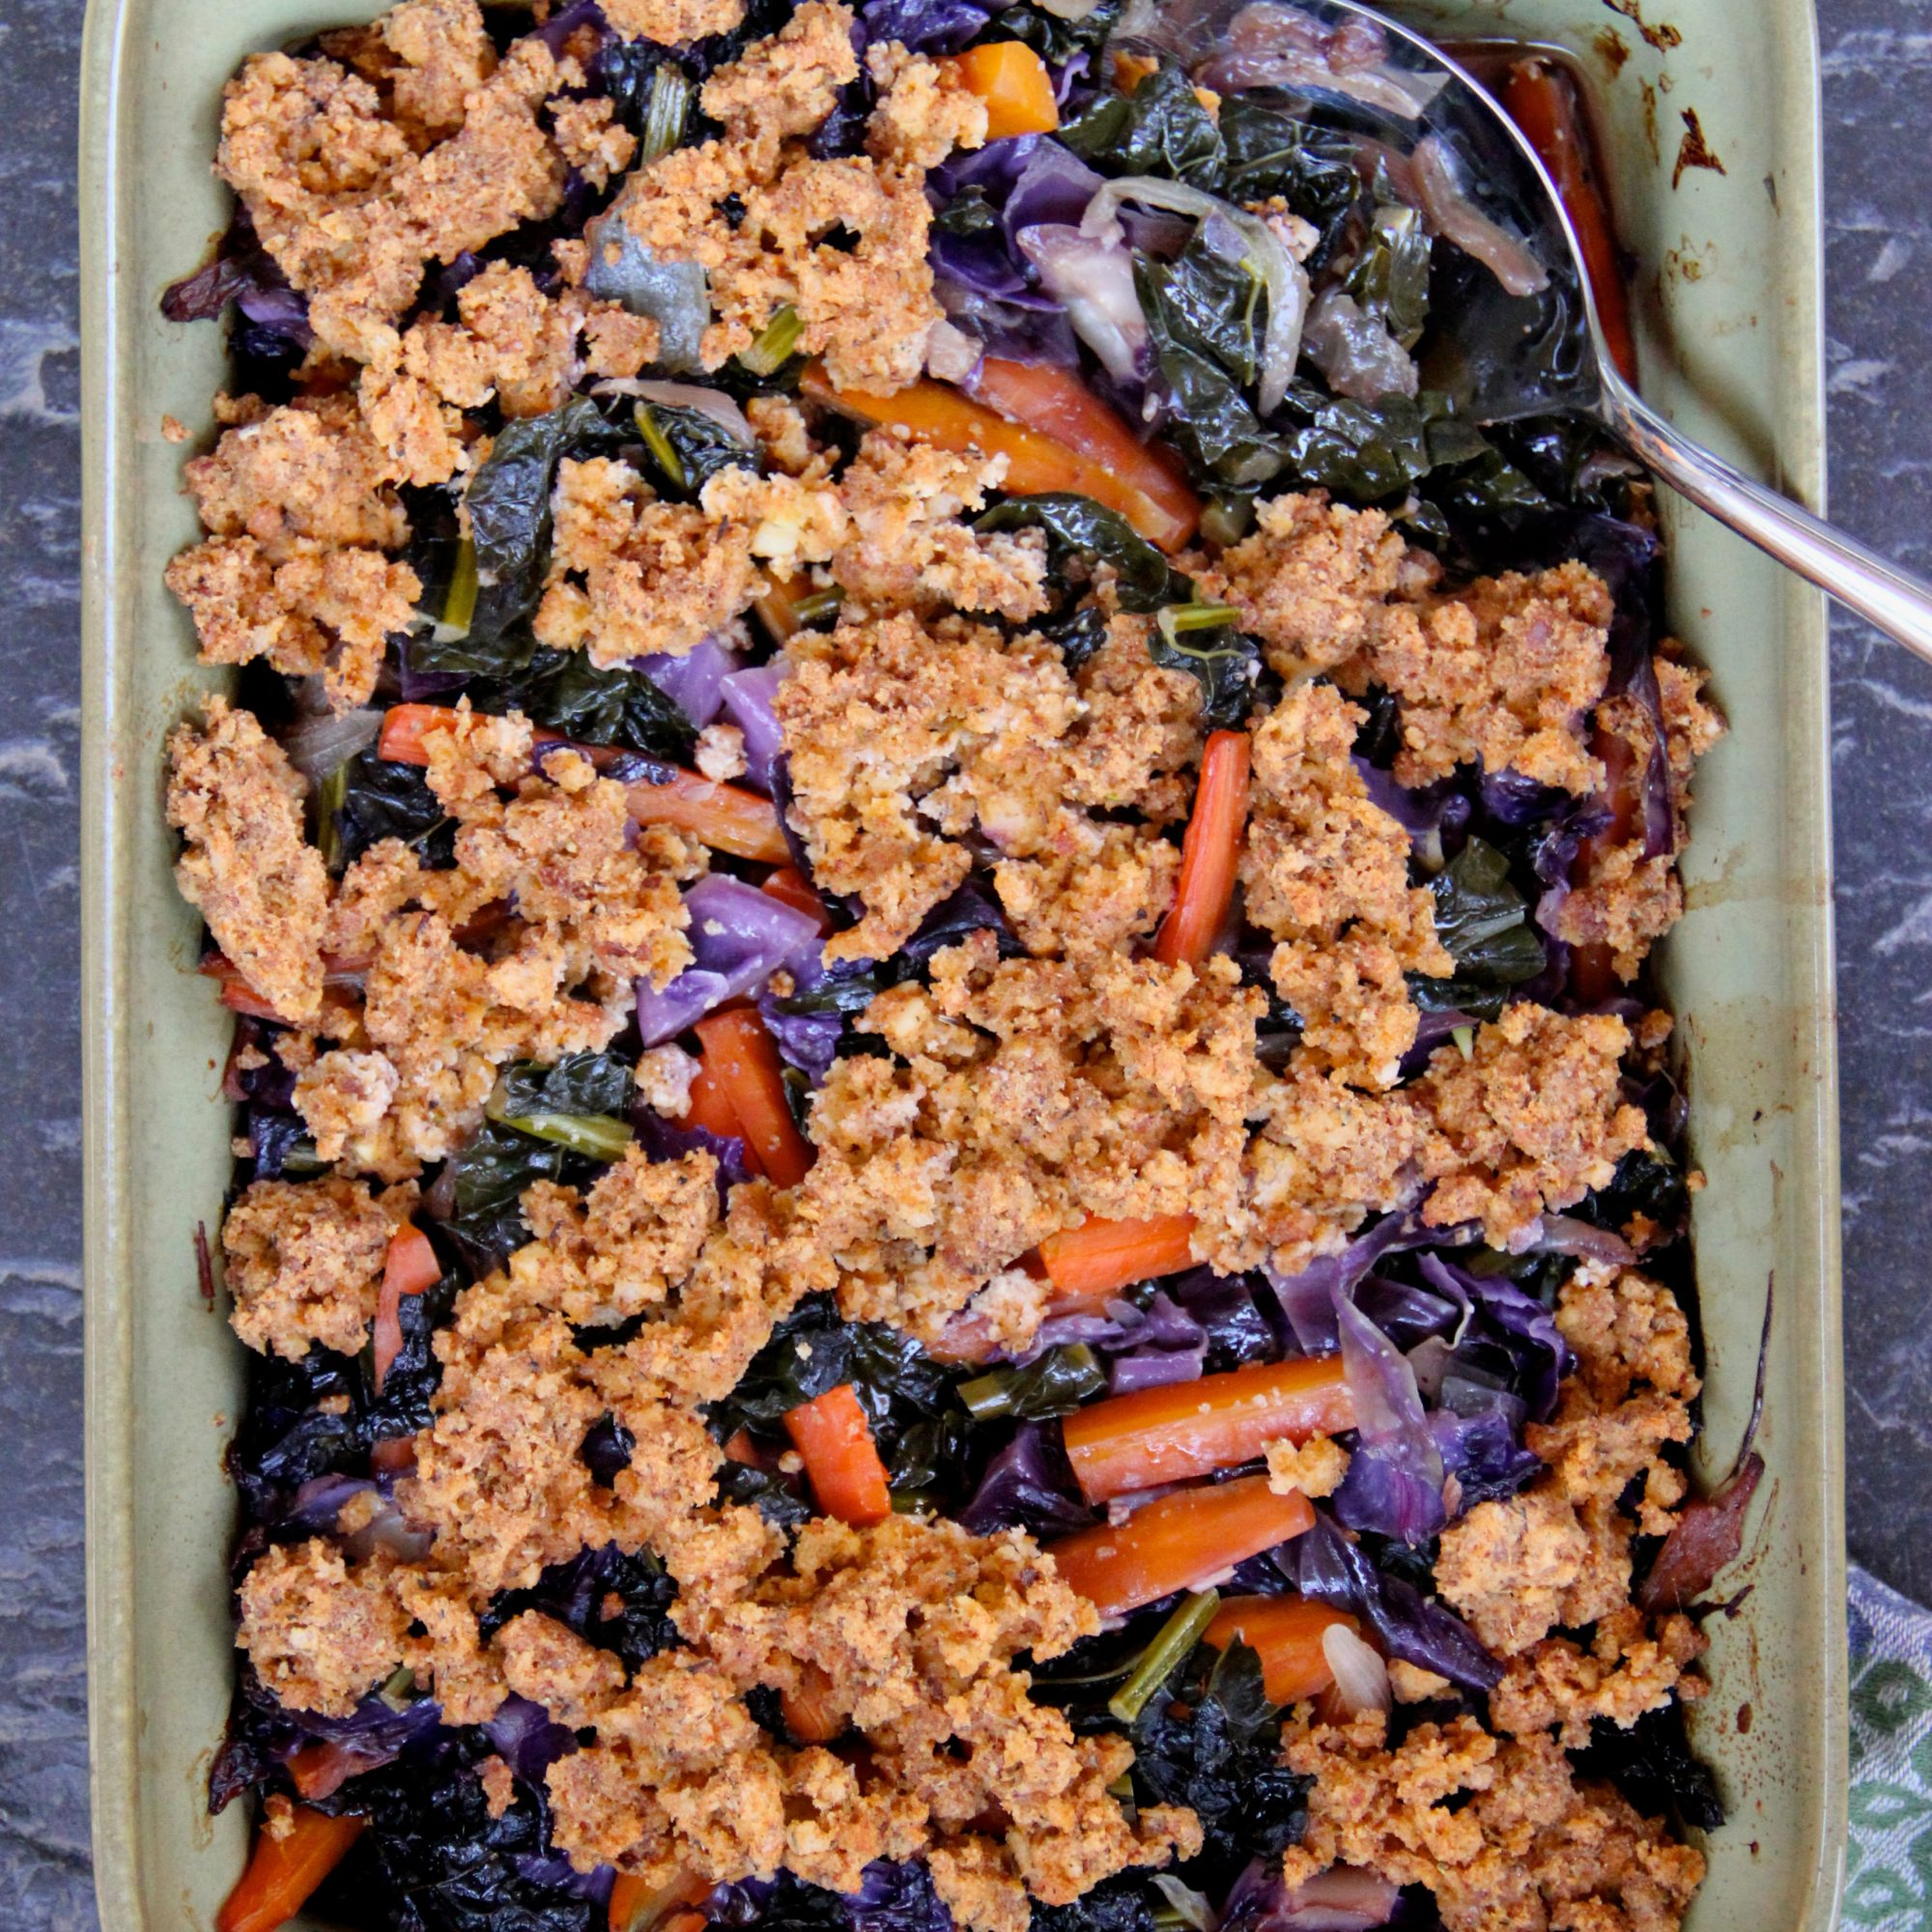 Winter Veggie Casserole with Tofu Crumble